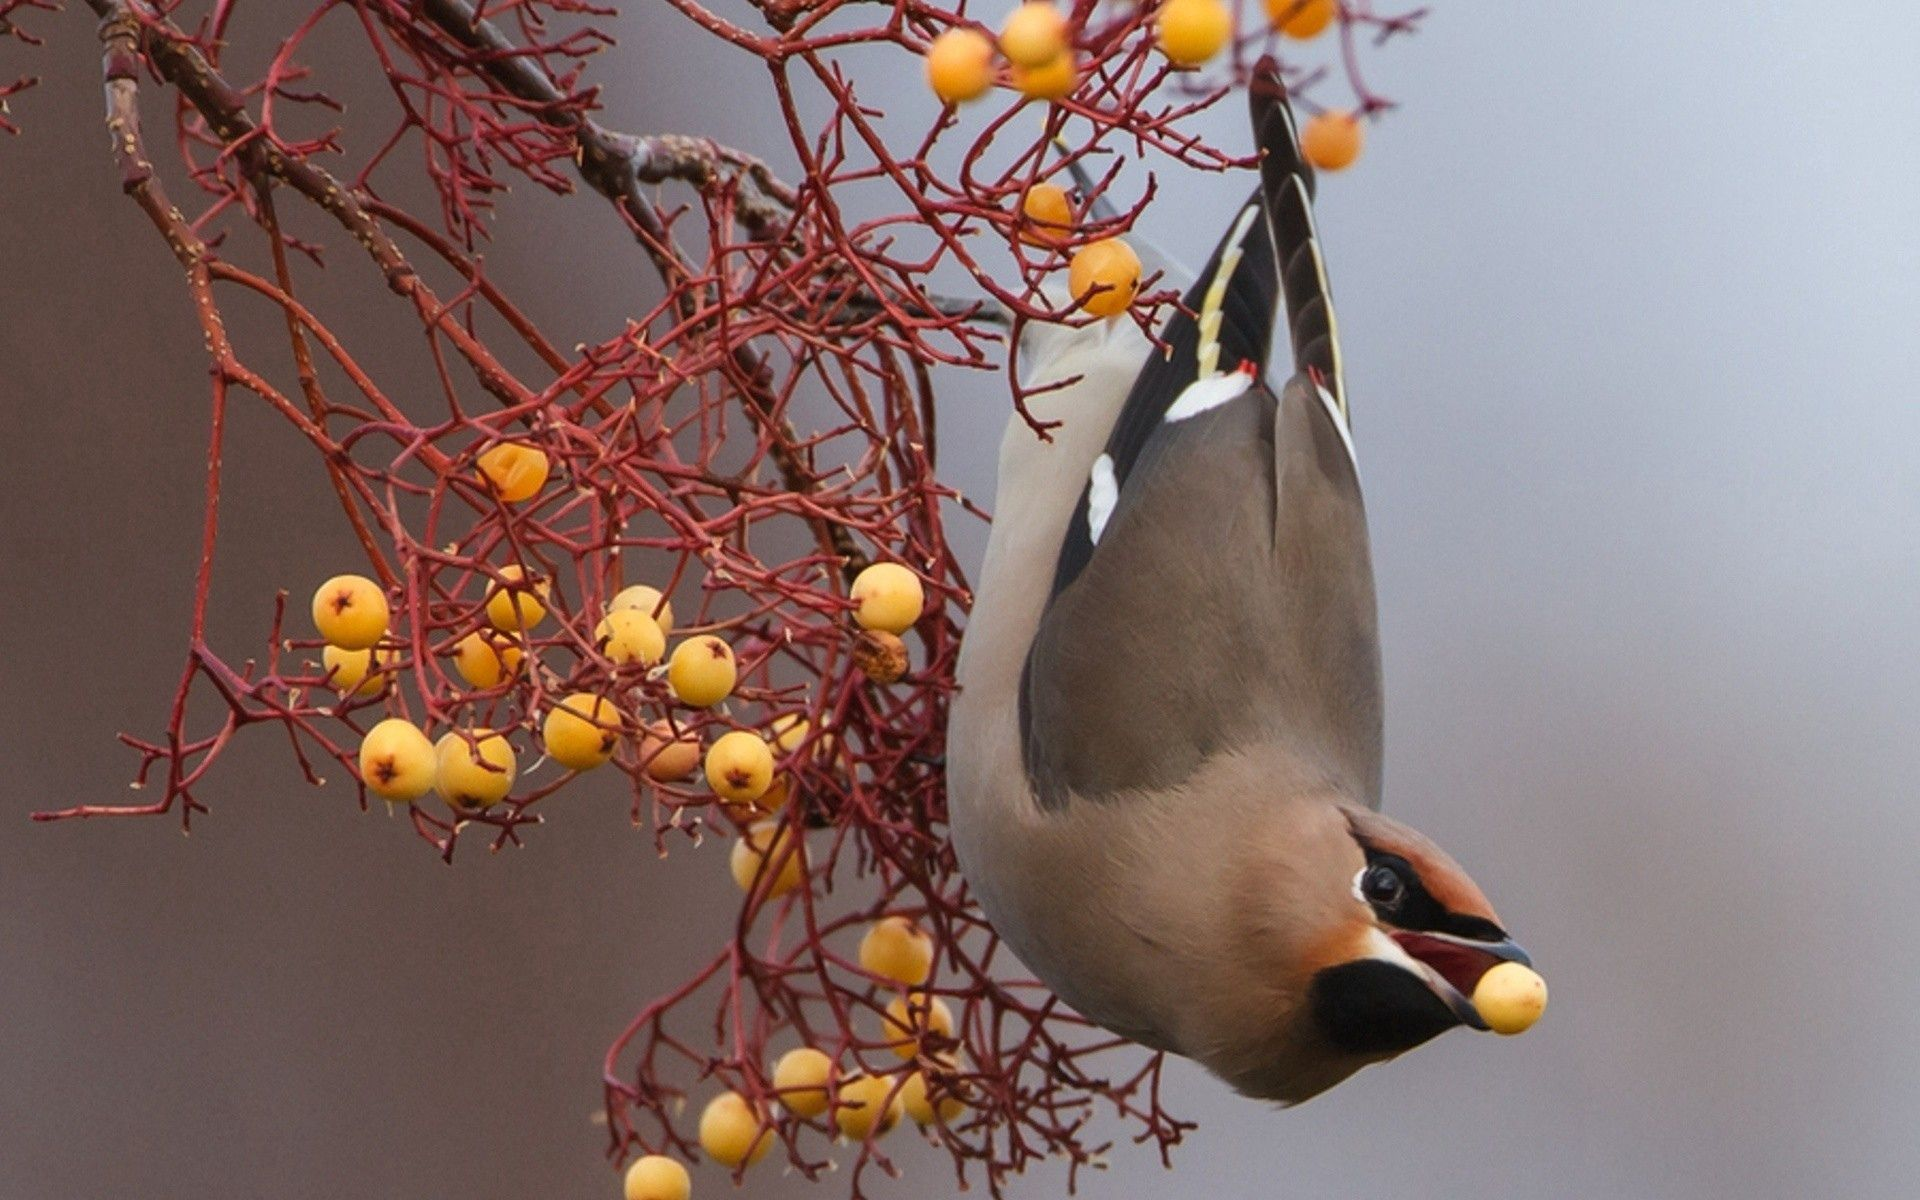 90985 download wallpaper Animals, Food, Berries, Bird, Branch screensavers and pictures for free